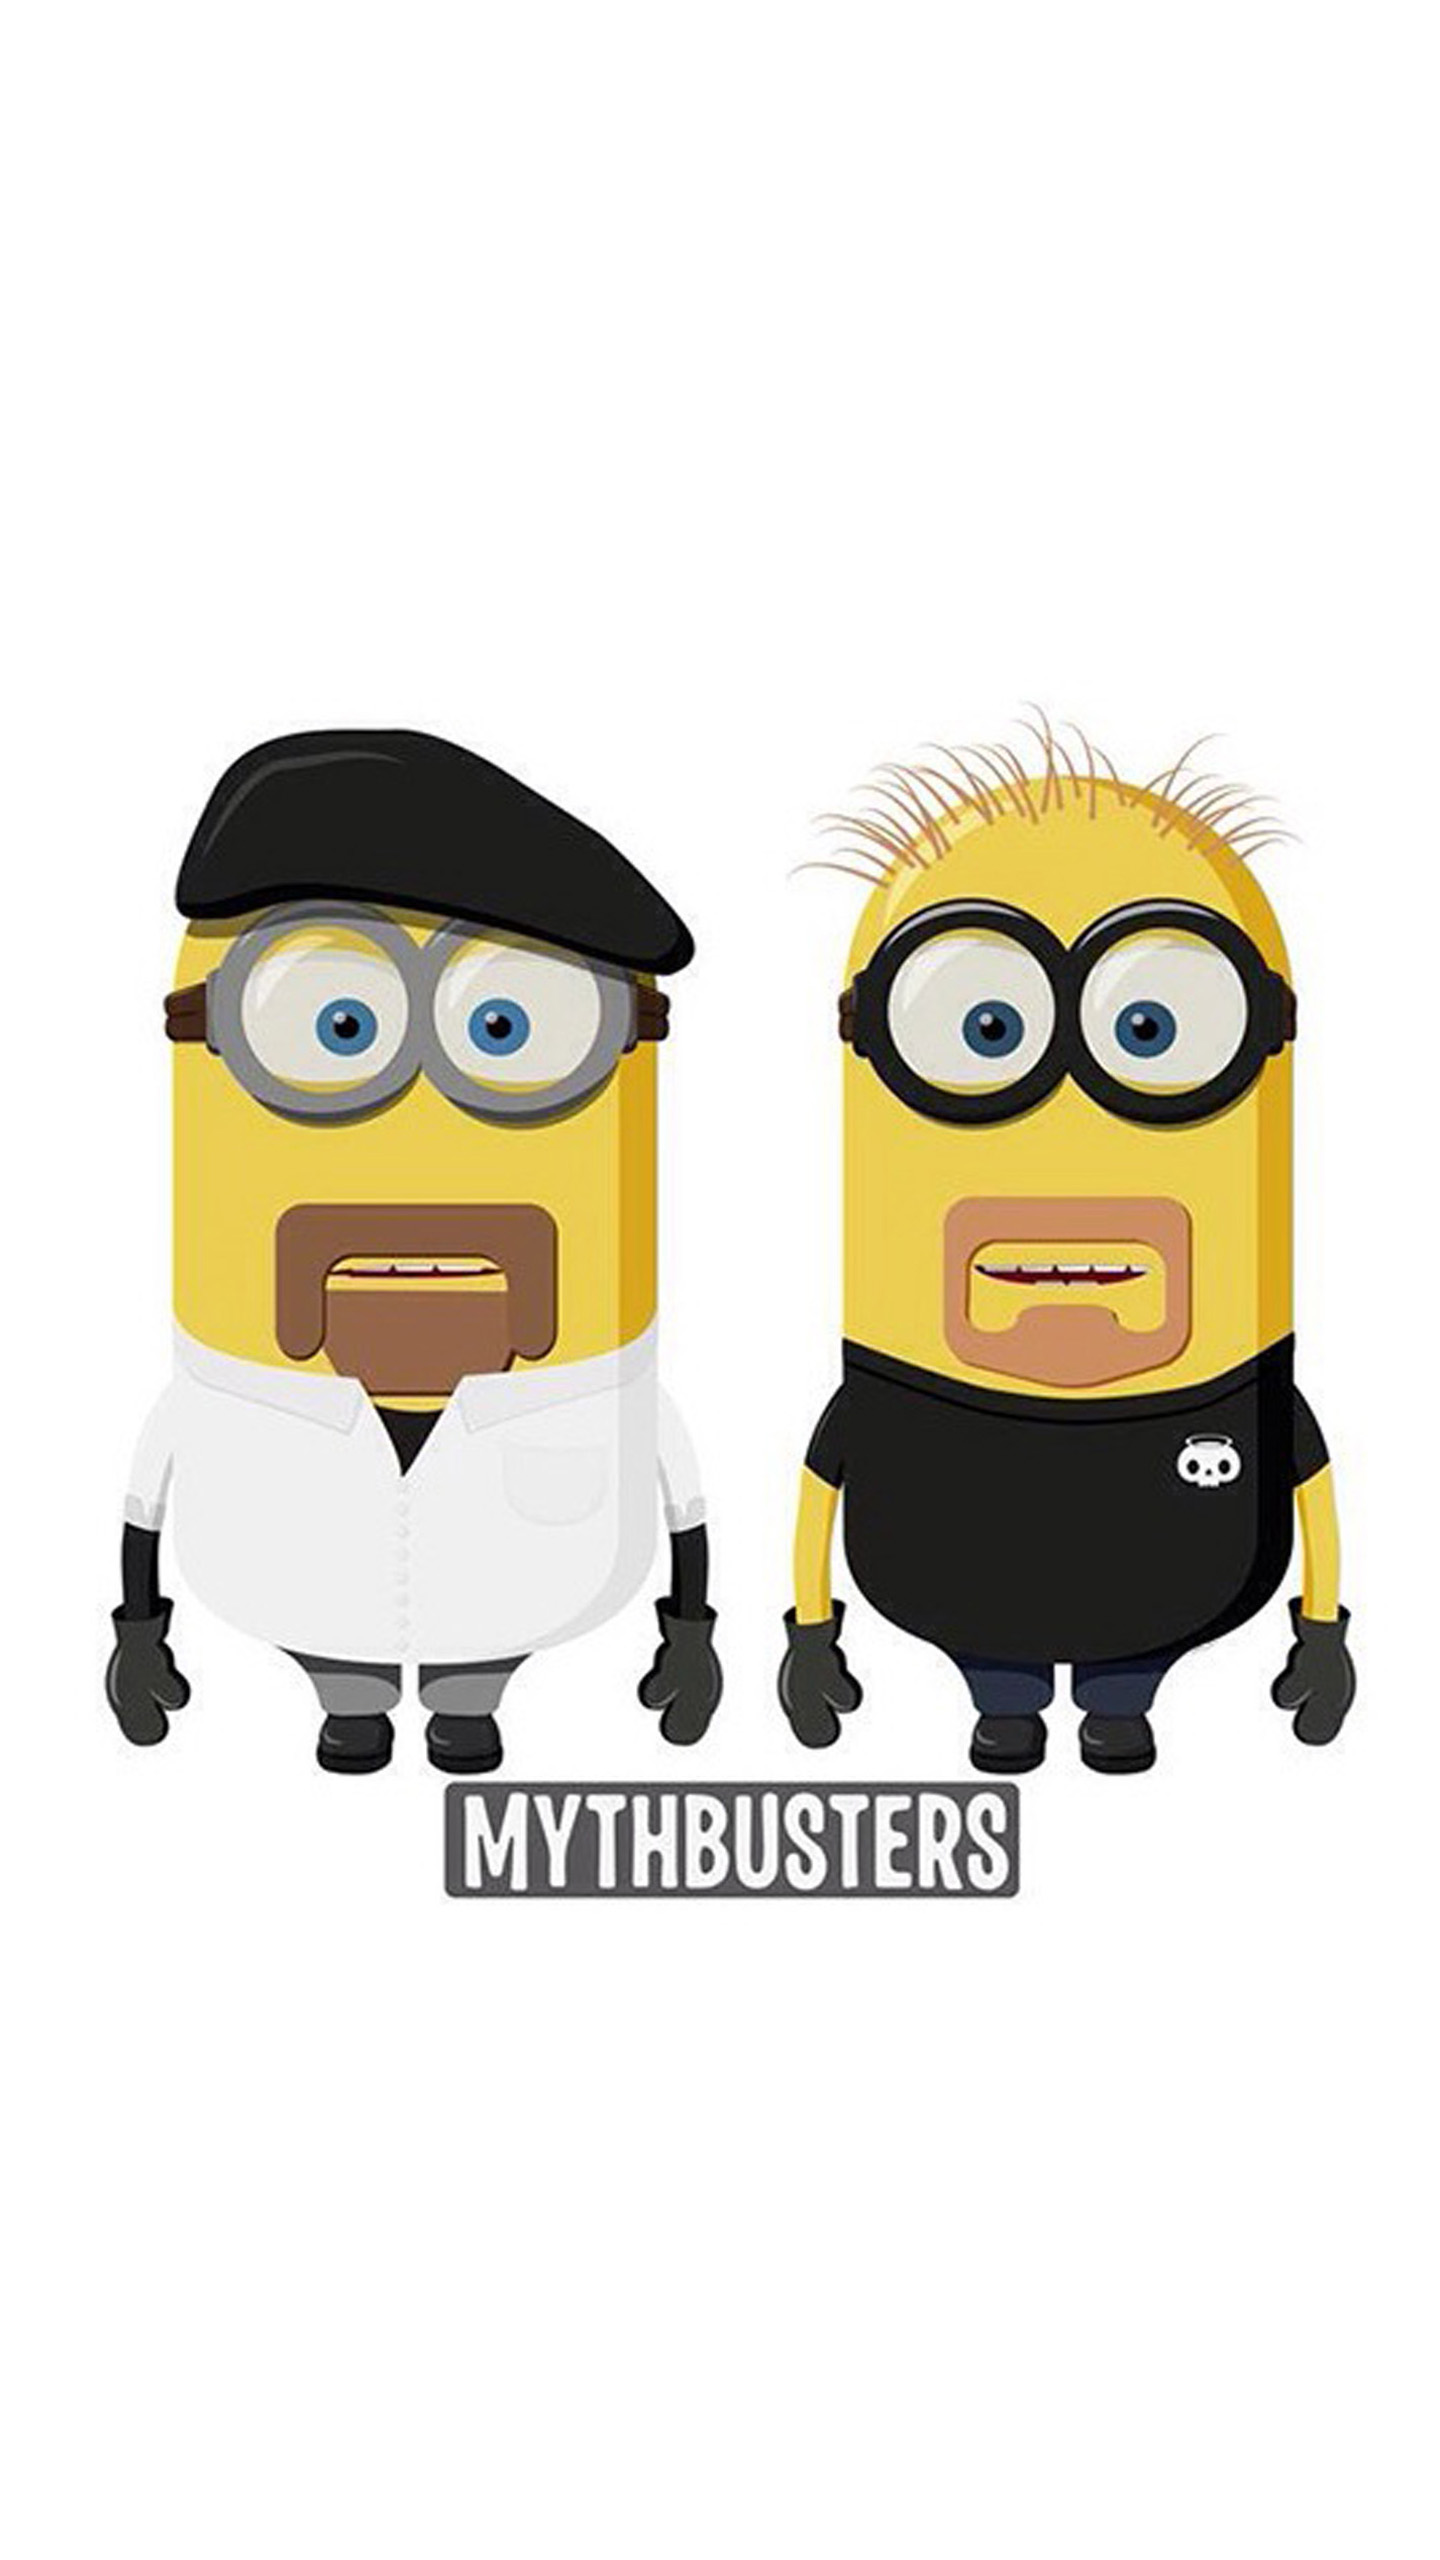 Mythbusters Minions Animation